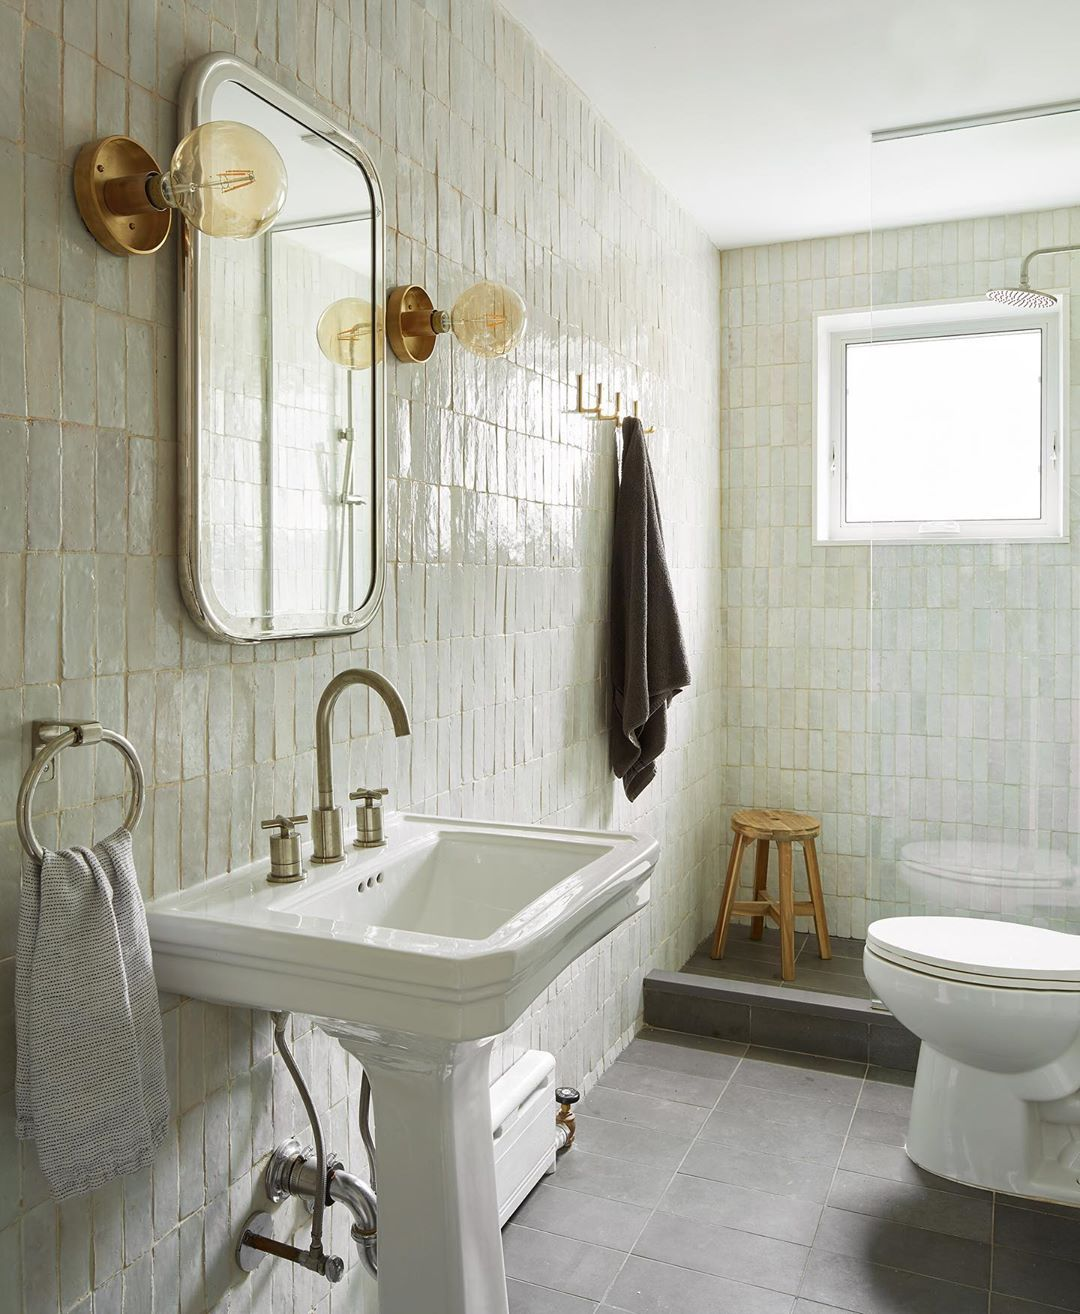 Bathroom With Cletile Floor To Ceiling Via Thiswoodenhouse